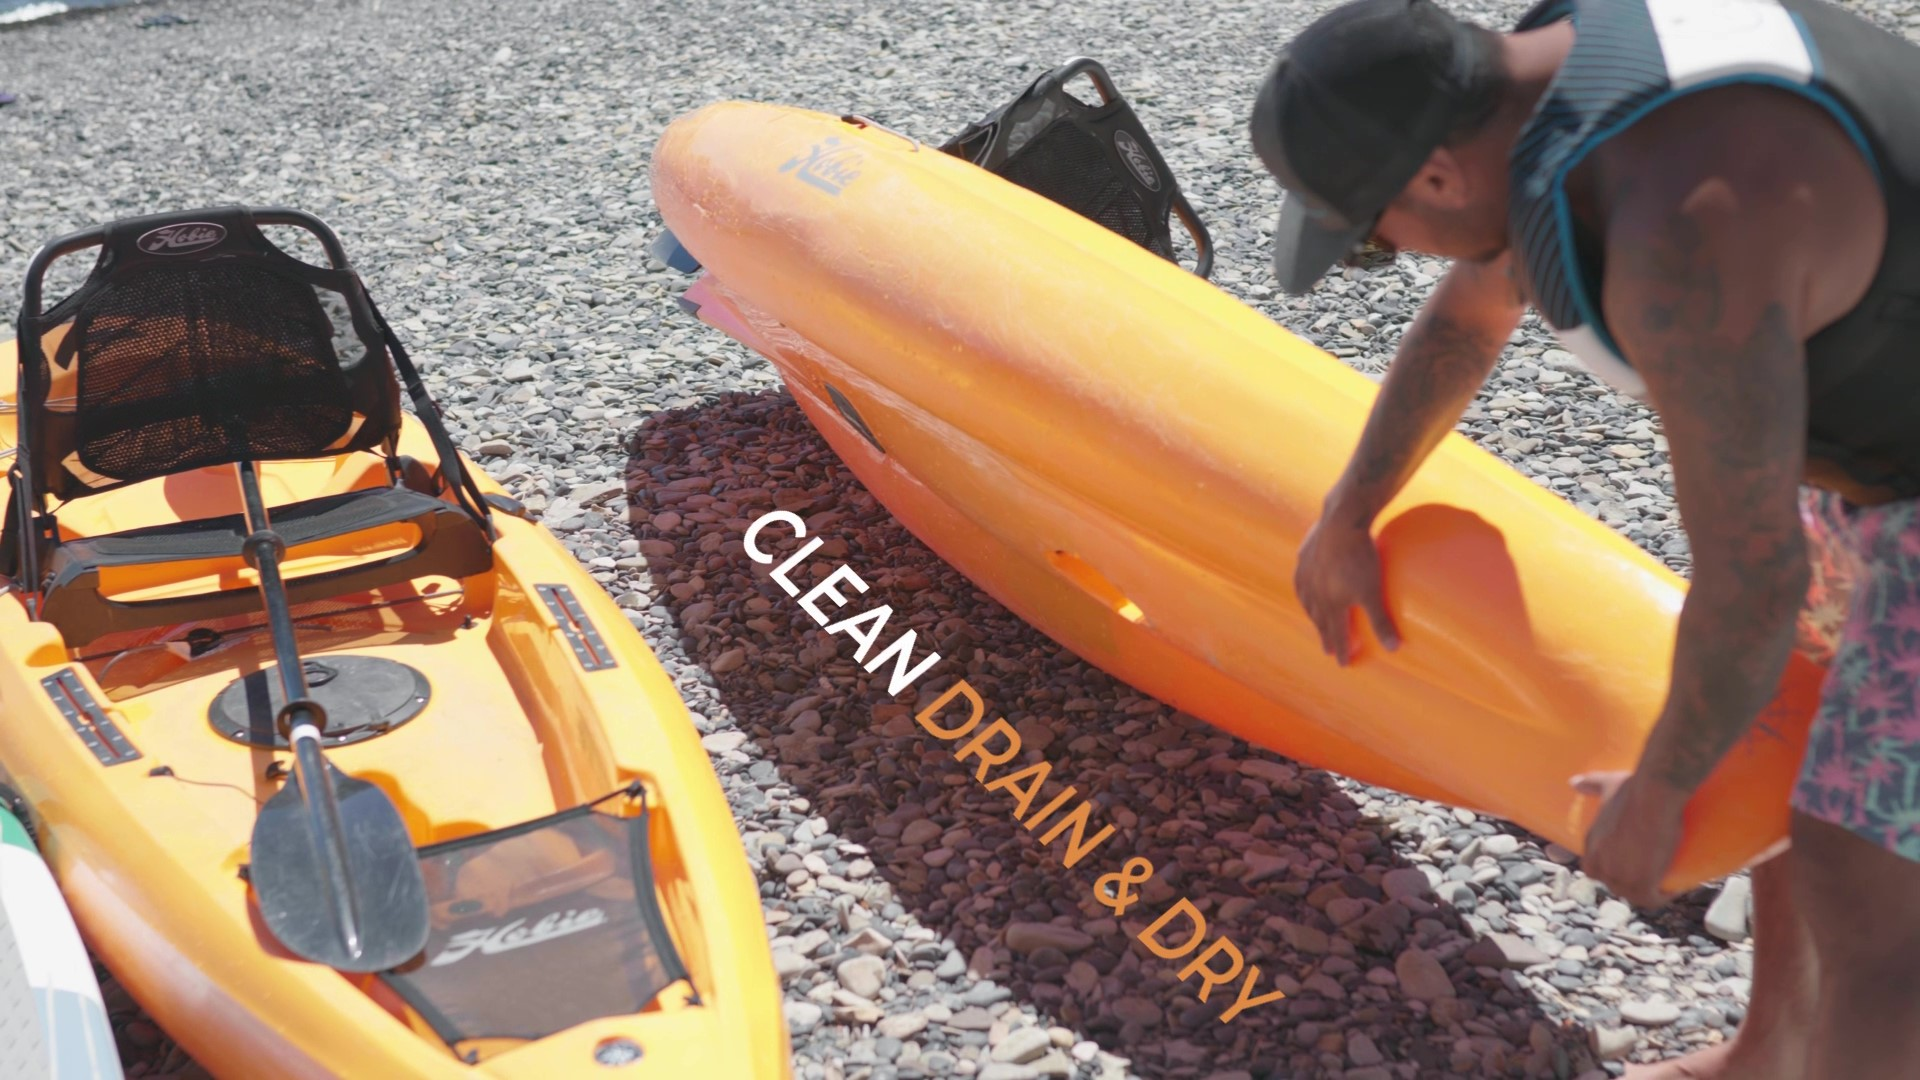 Clean drain and dry your kayak or sup